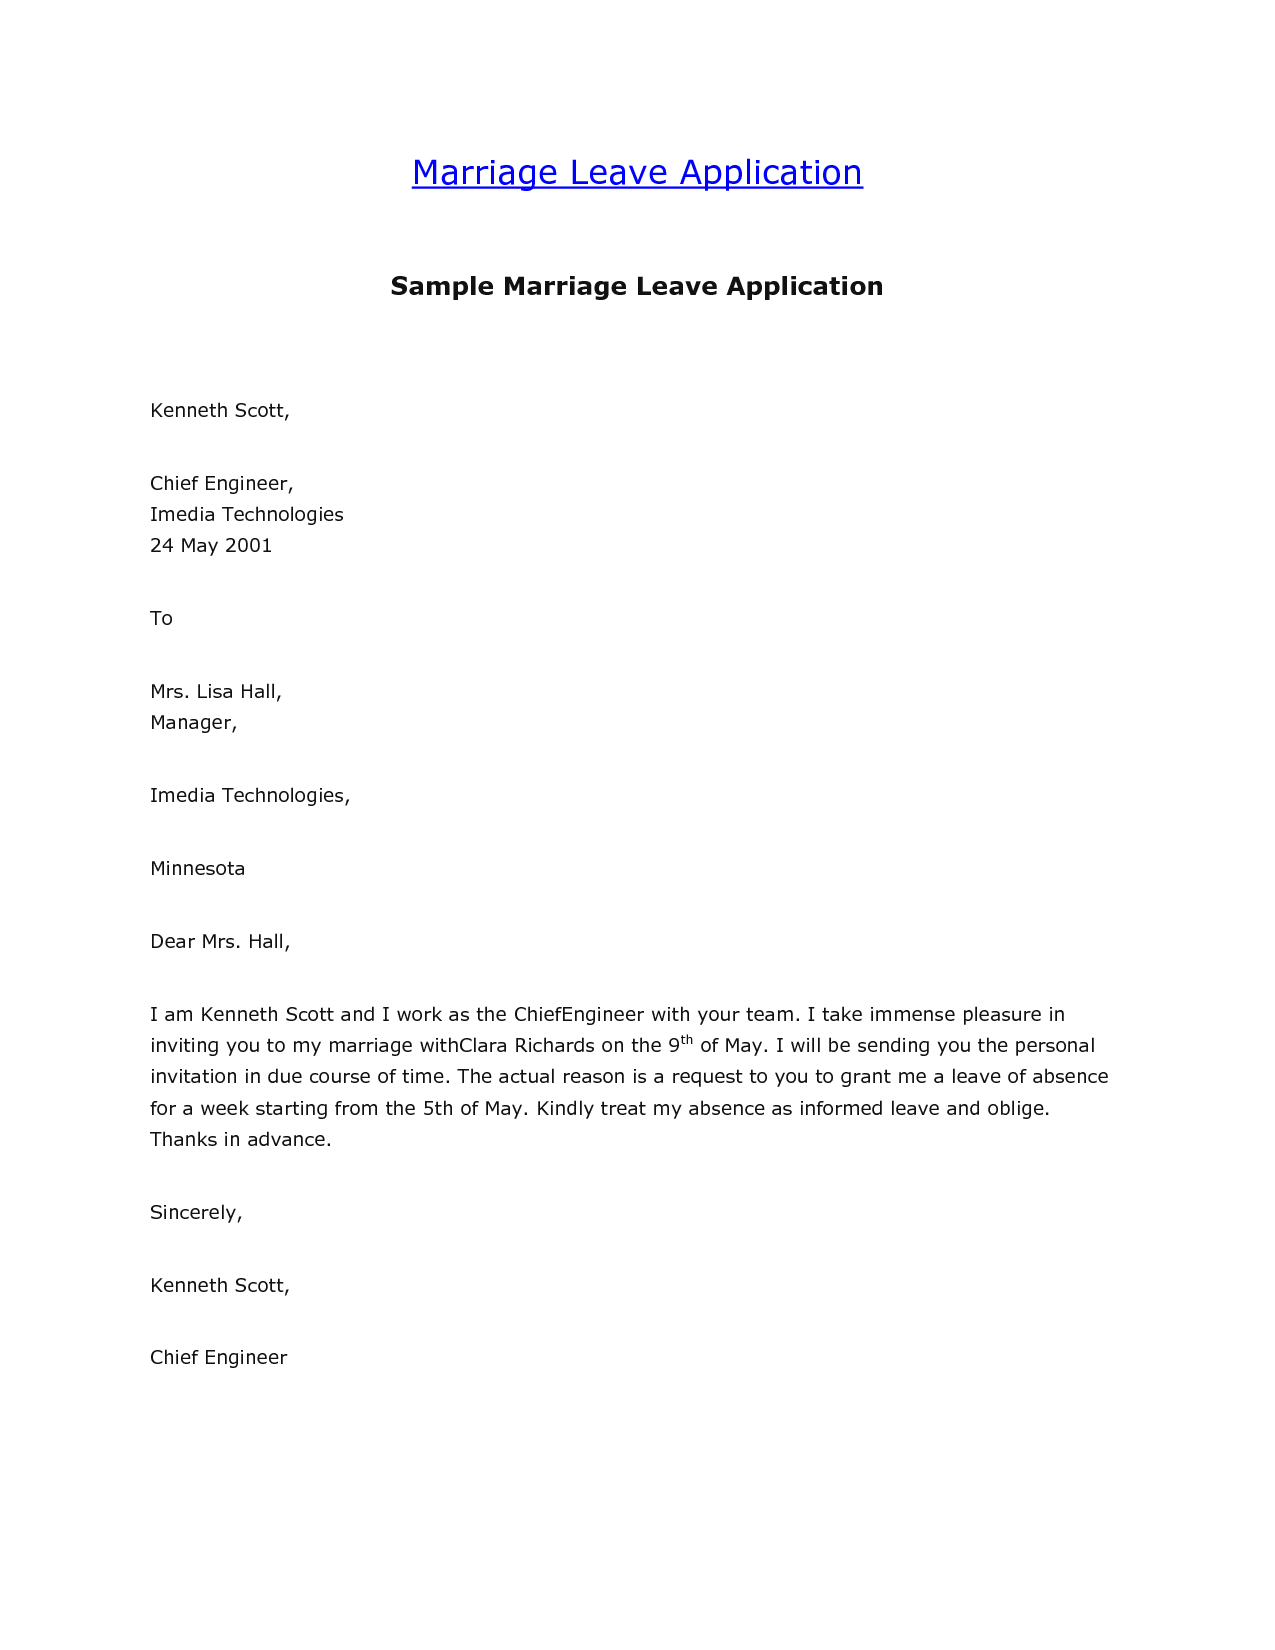 Marriage Leave Letter Format Best Template Collection Application